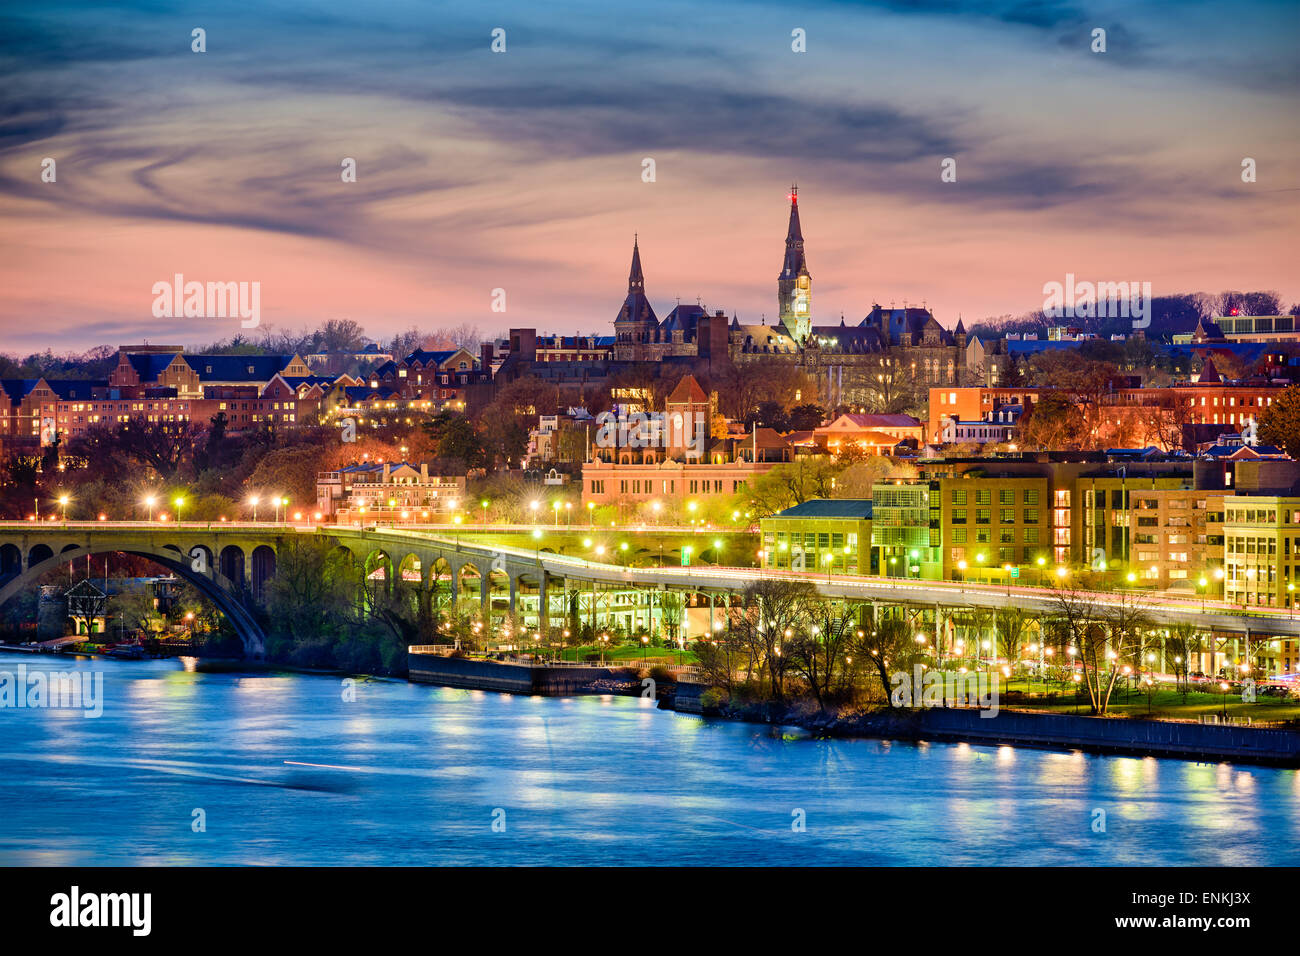 Georgetown, Washington, DC Skyline en el Potomac River. Imagen De Stock